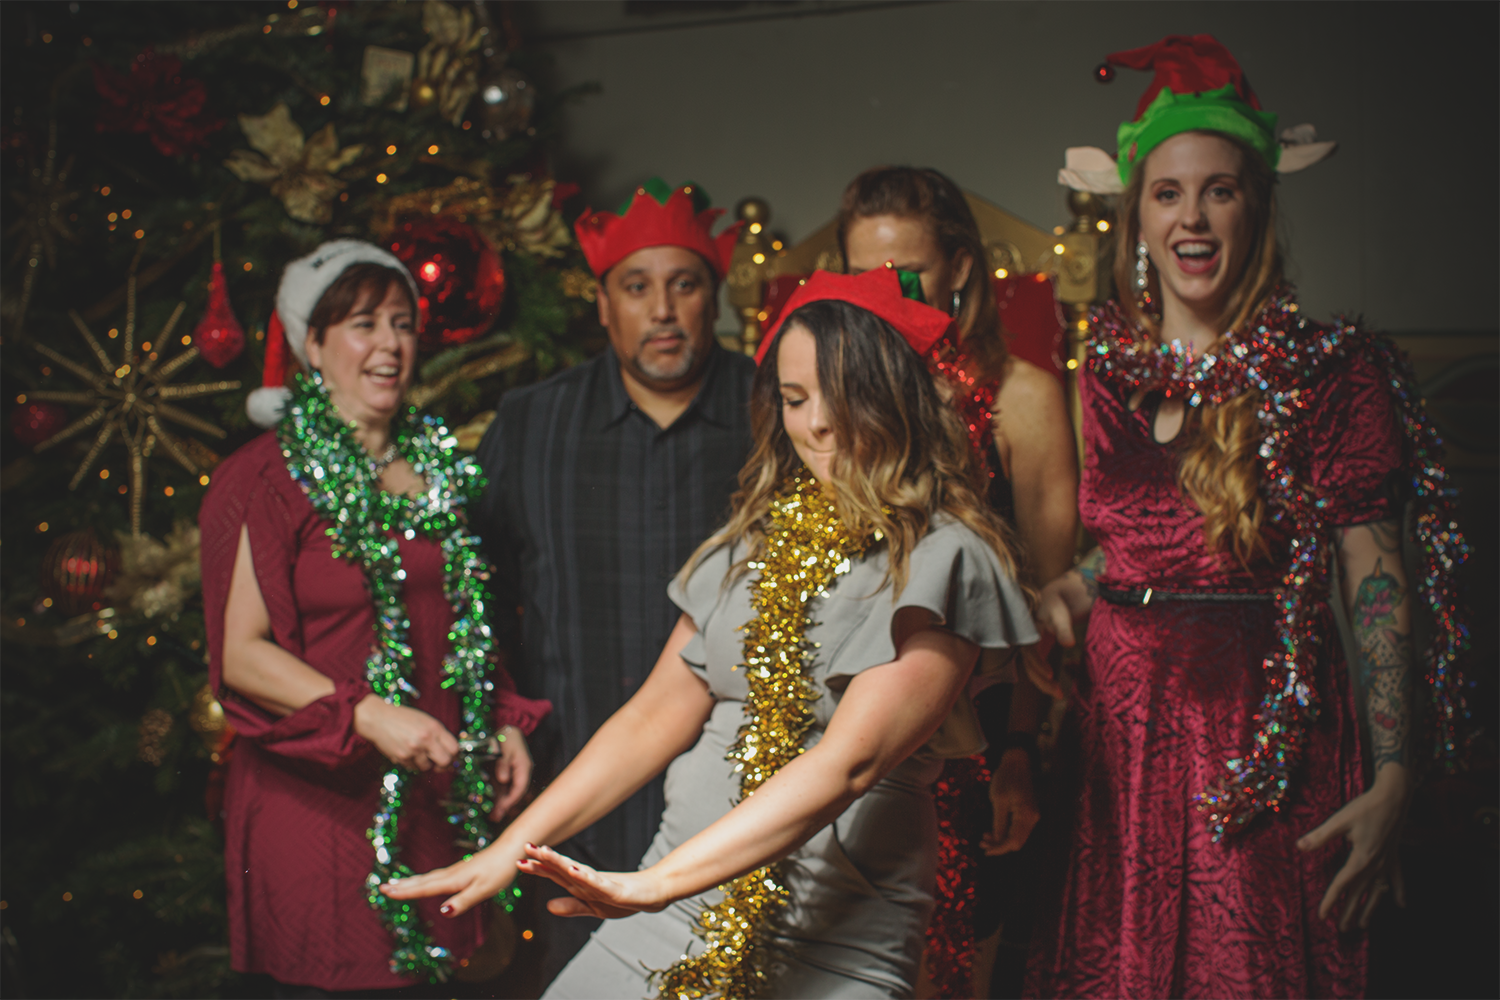 epproperties-vancouver-washington-xmas-party-photolga35.png